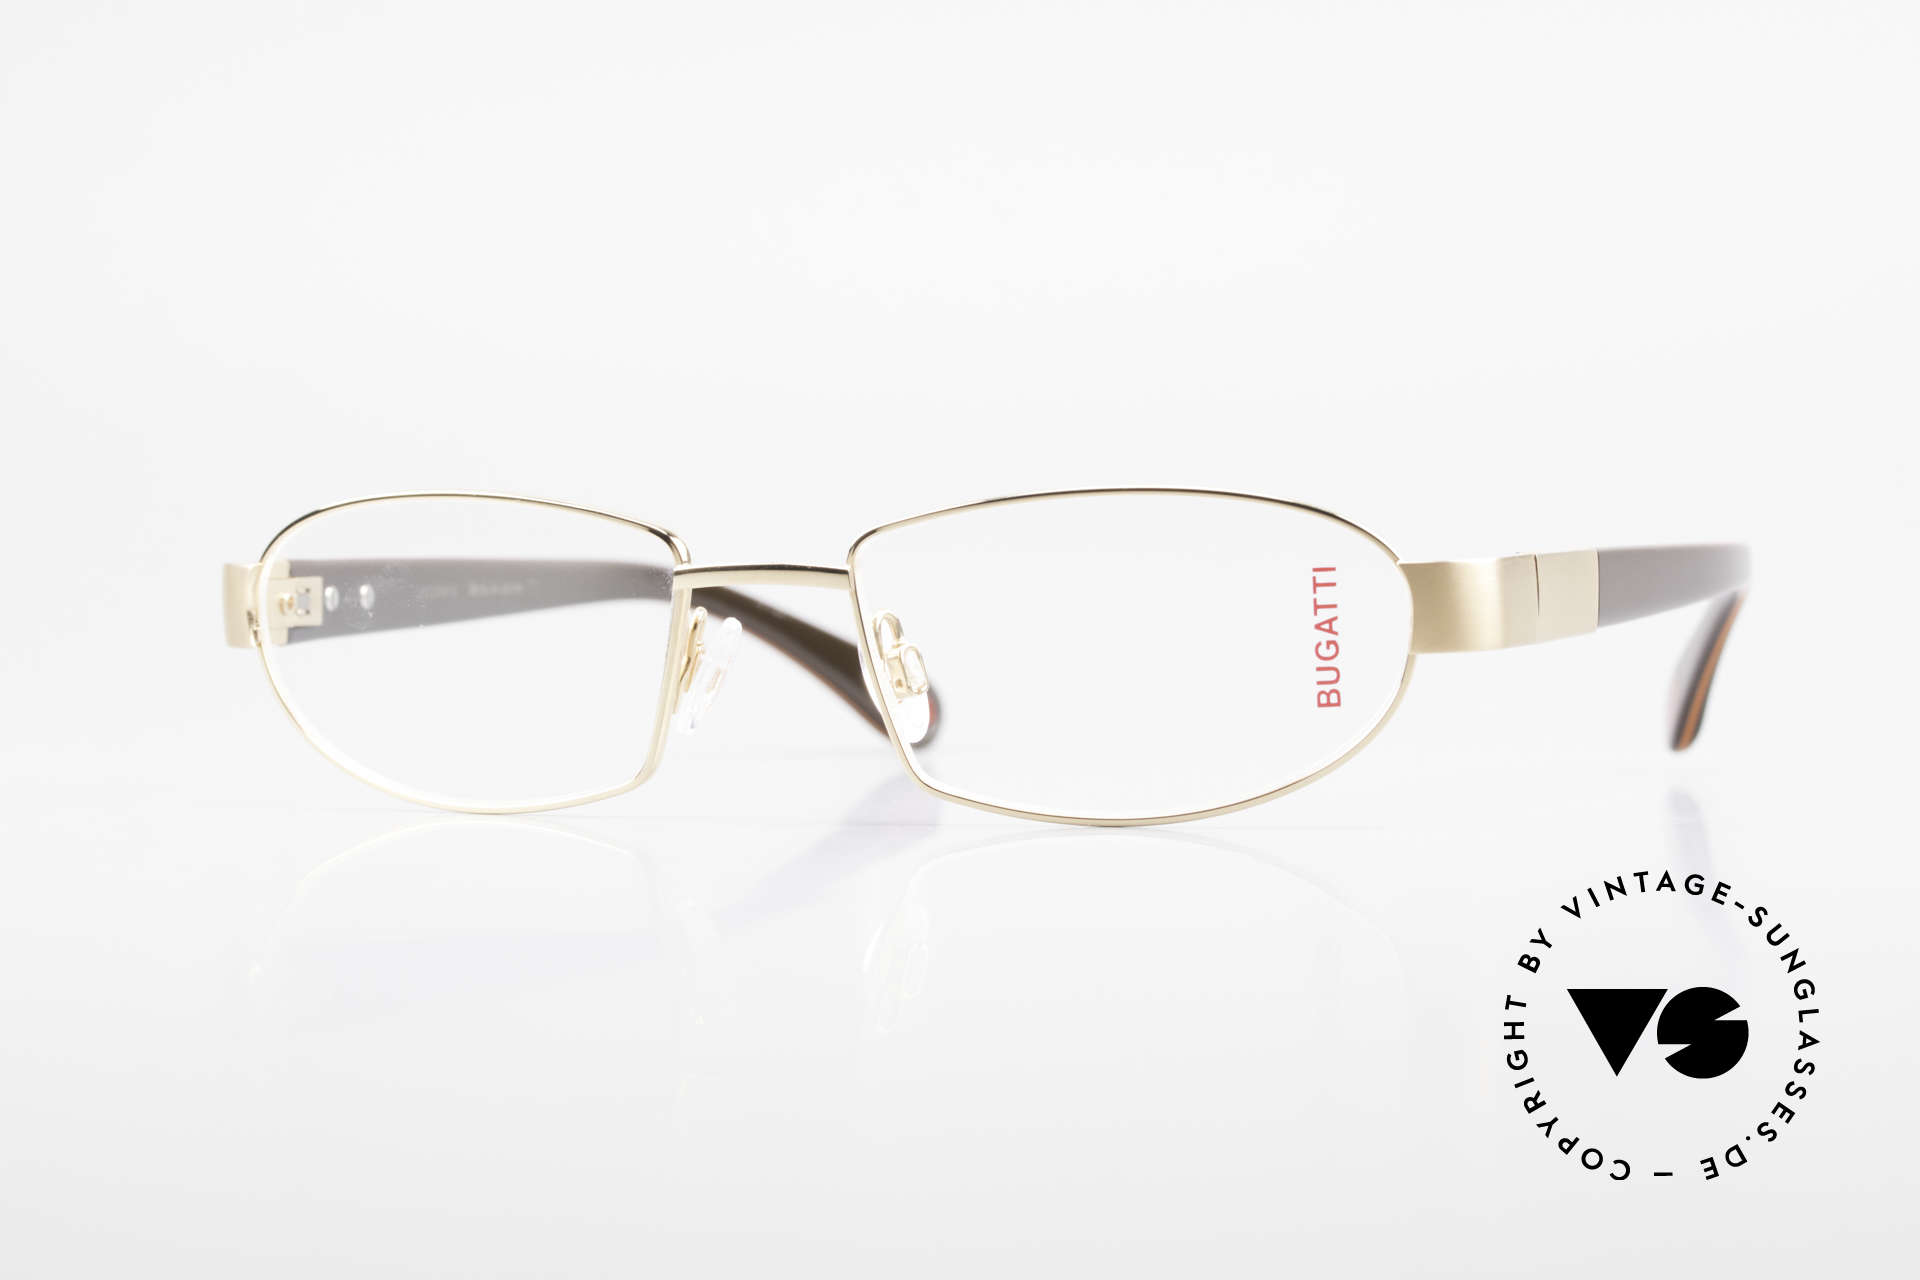 Bugatti 527 Titanium Frame Gold-Plated, BUGATTI luxury eyeglasses of incredible top-quality, Made for Men